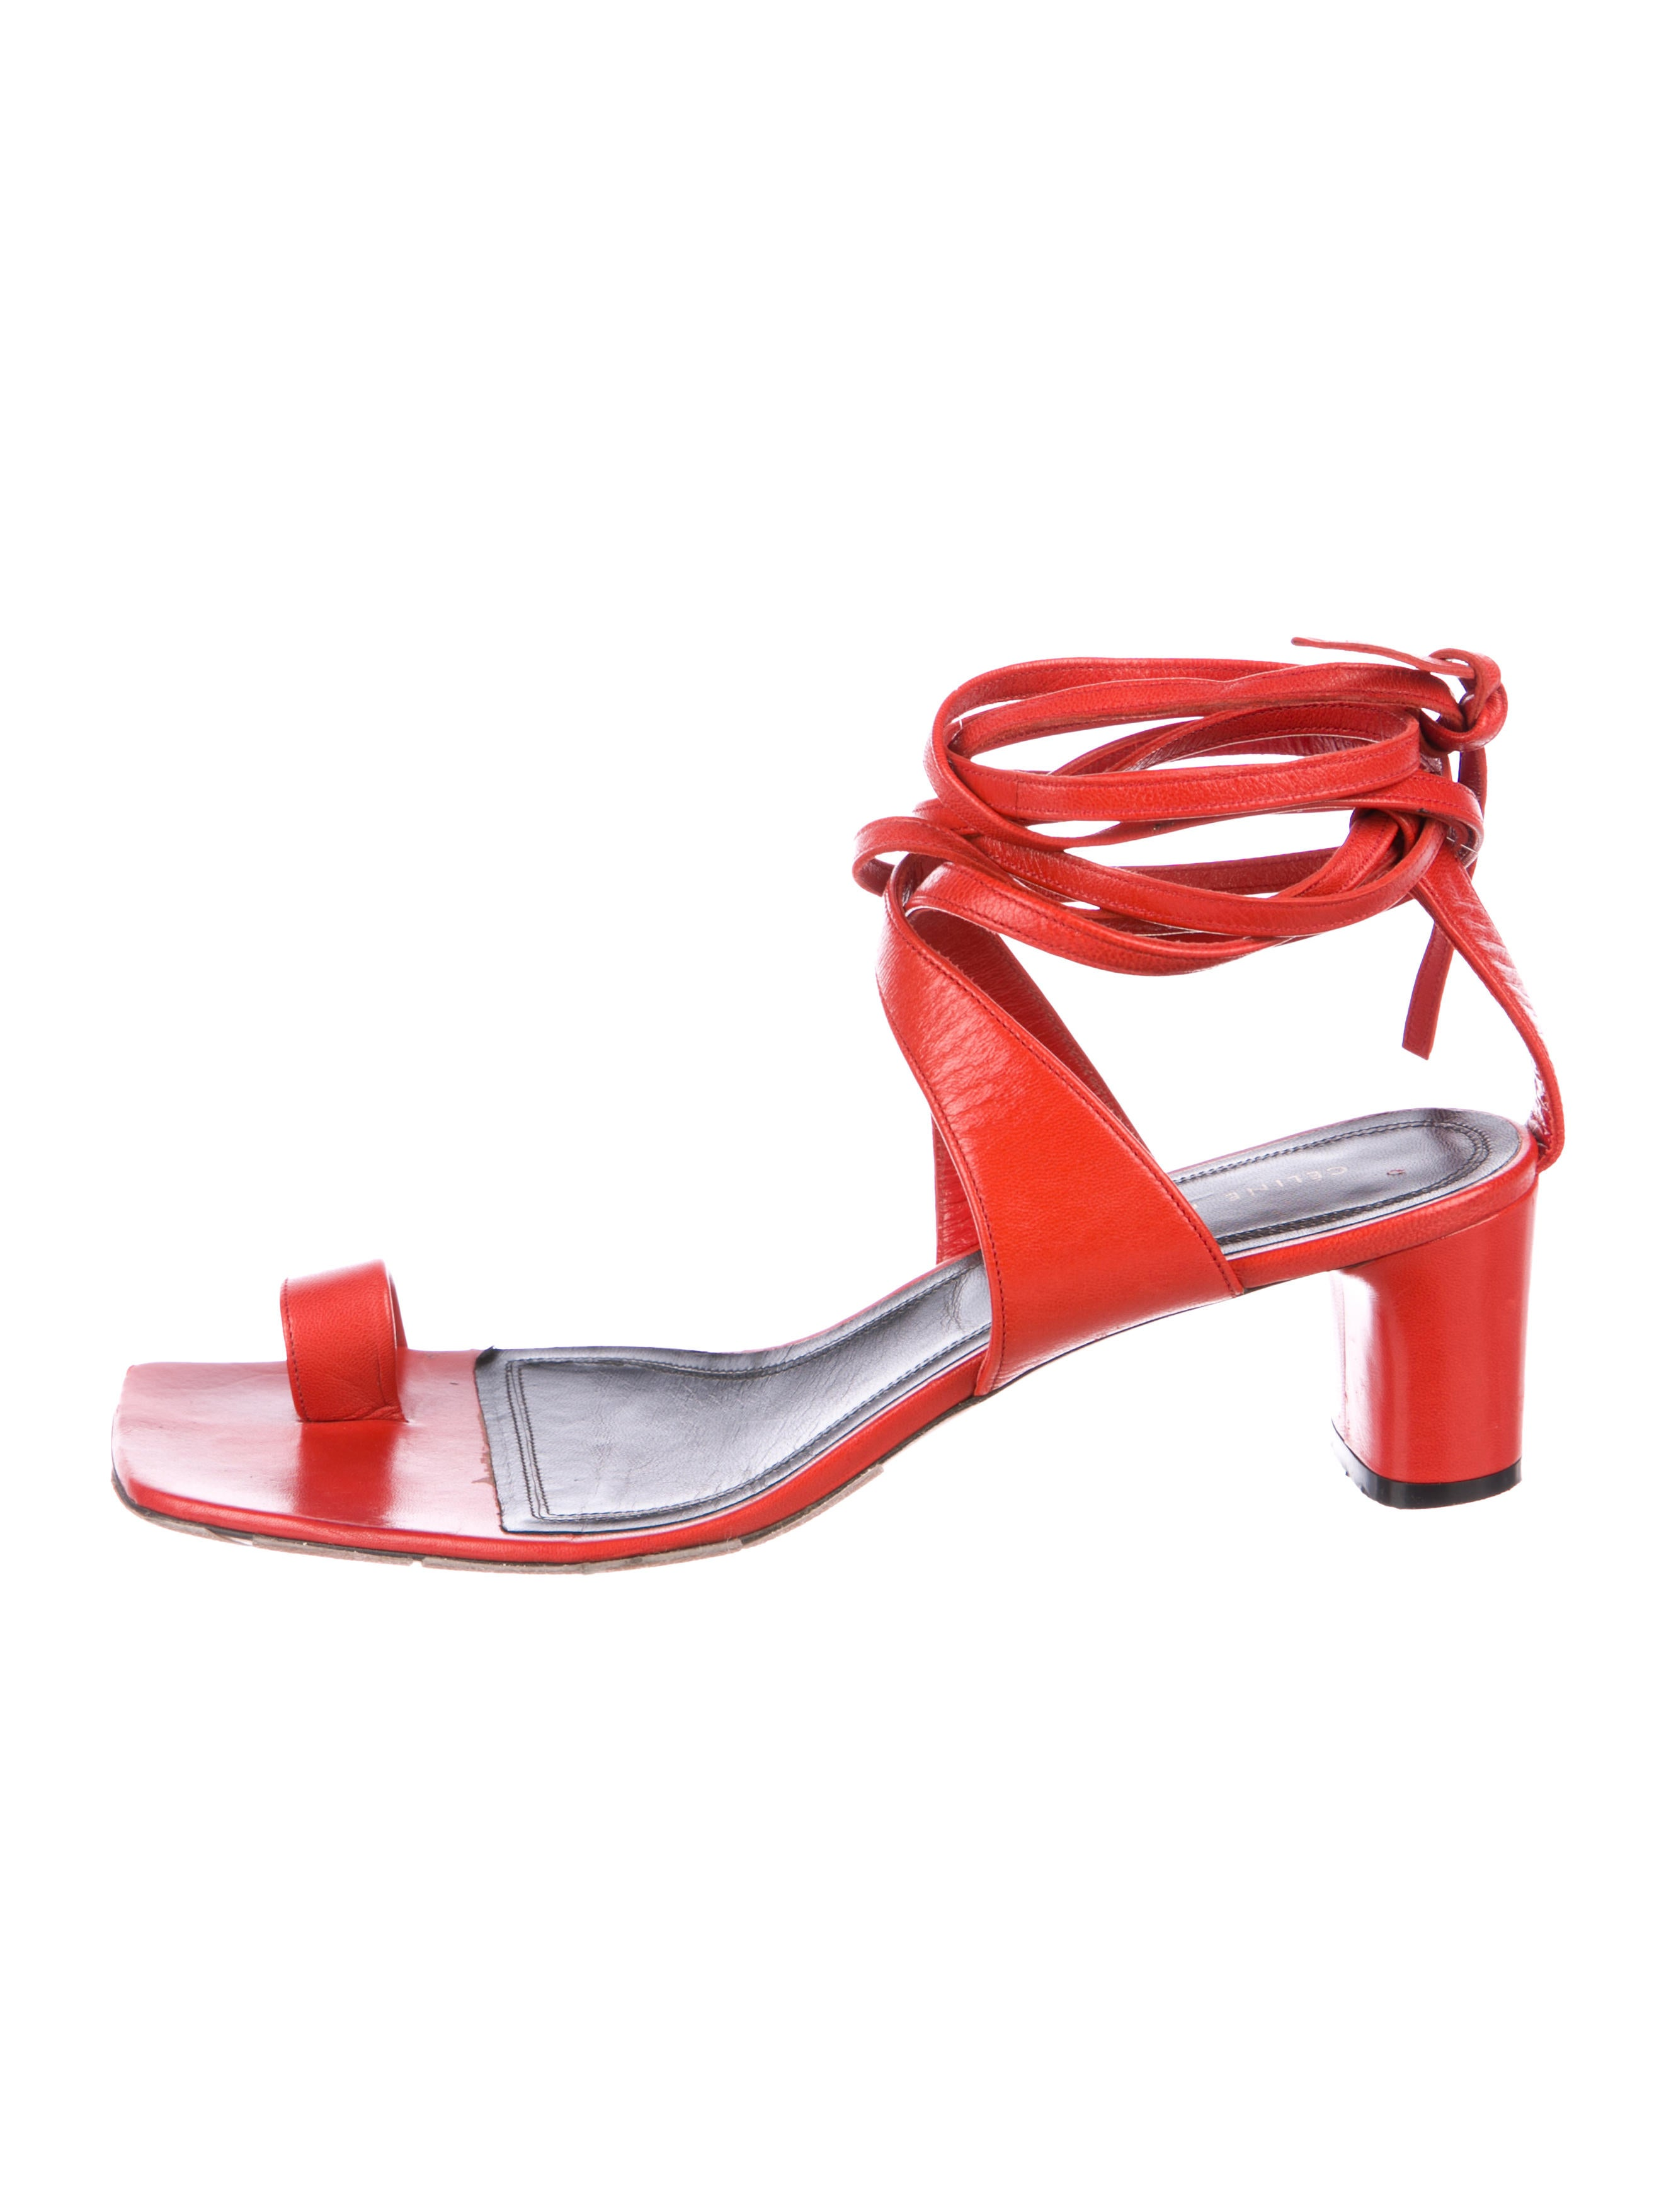 Leather Wrap-Around Sandals - Shoes